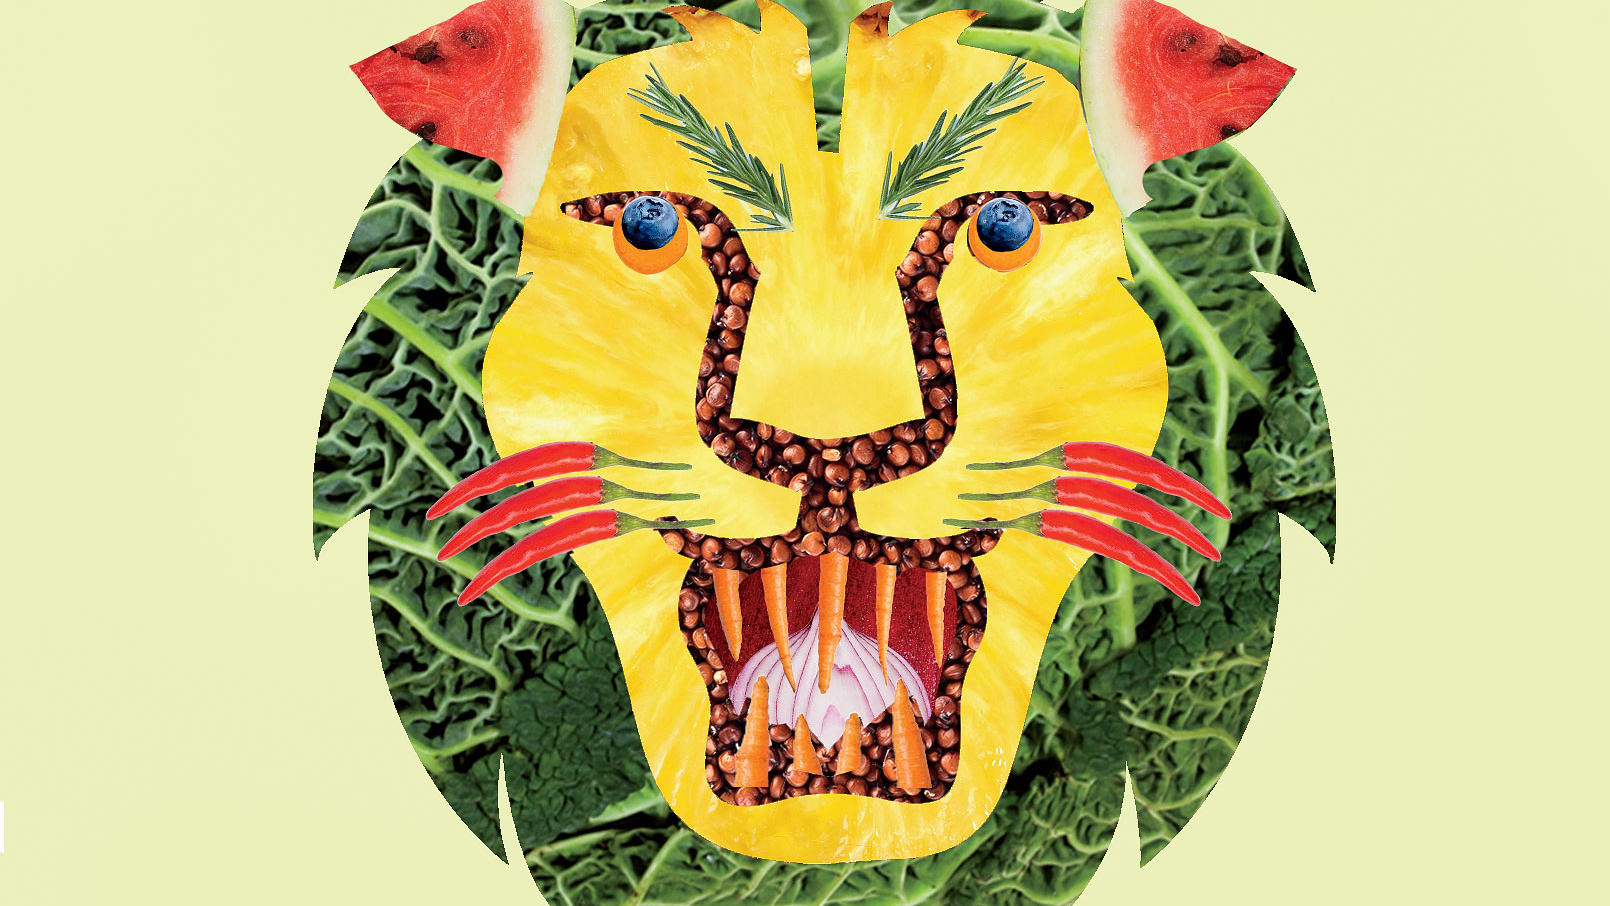 Illustration of Columbia lion mascot made out of fruits and vegetables